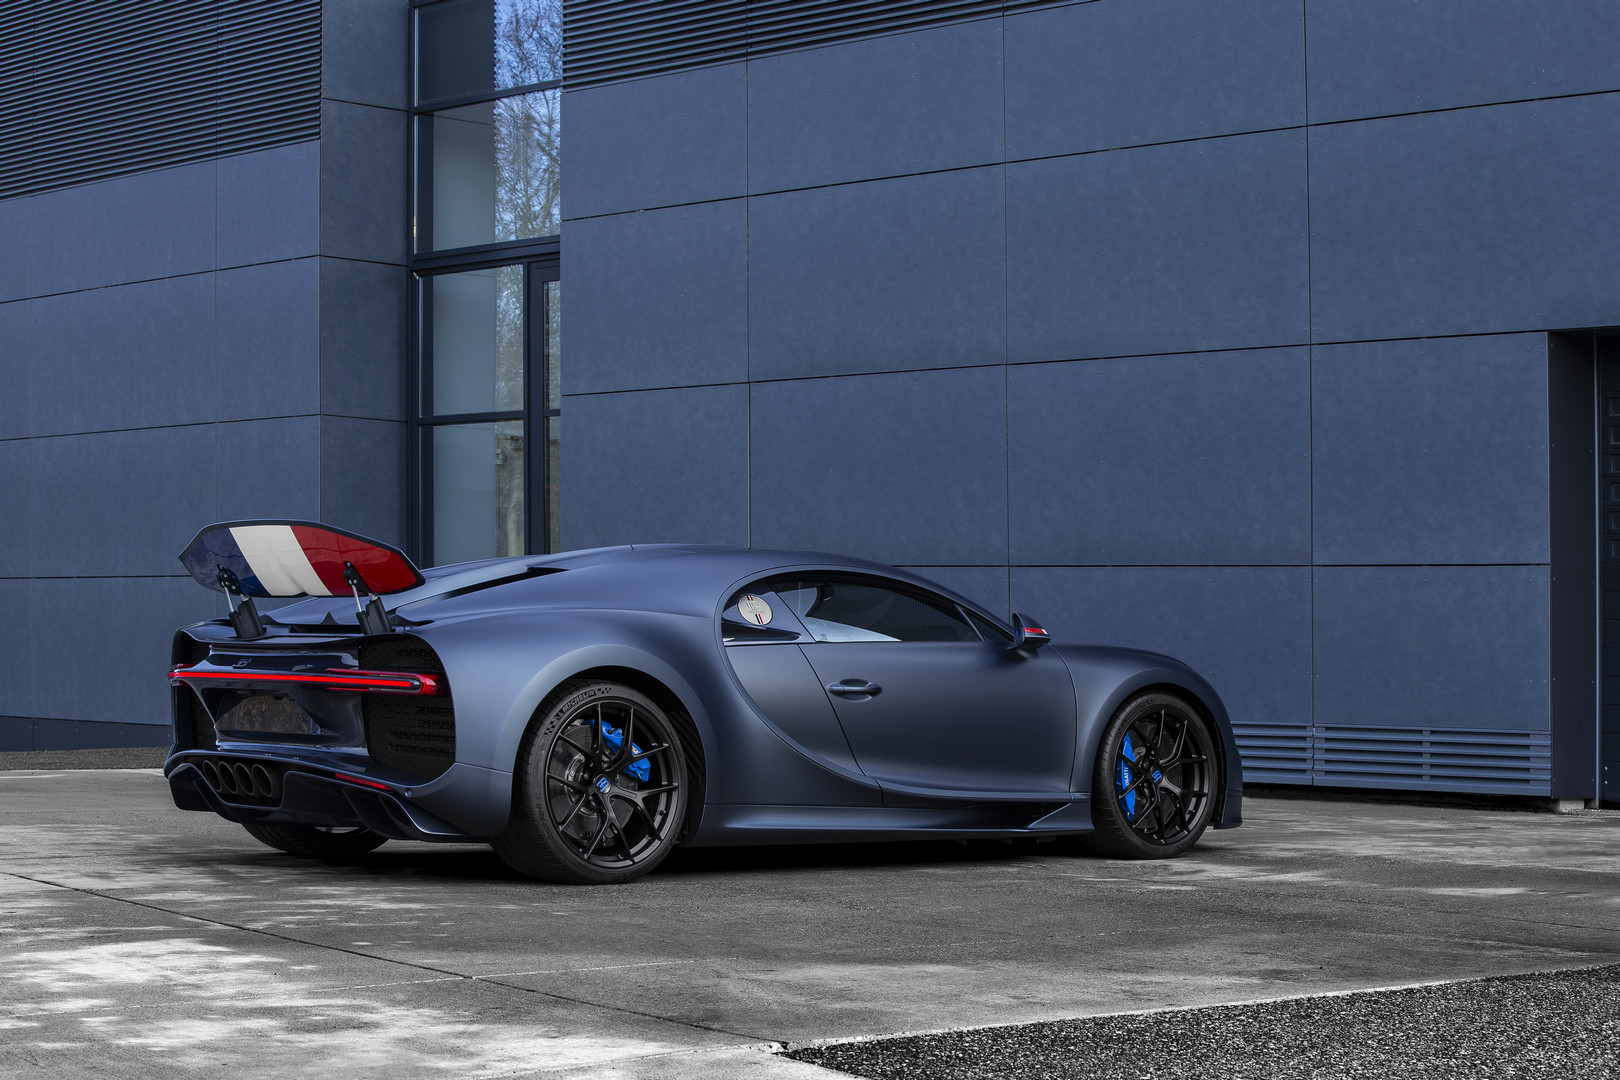 The Bugatti Chiron 110 Ans Celebrates, Well, 110 Years of Bugatti